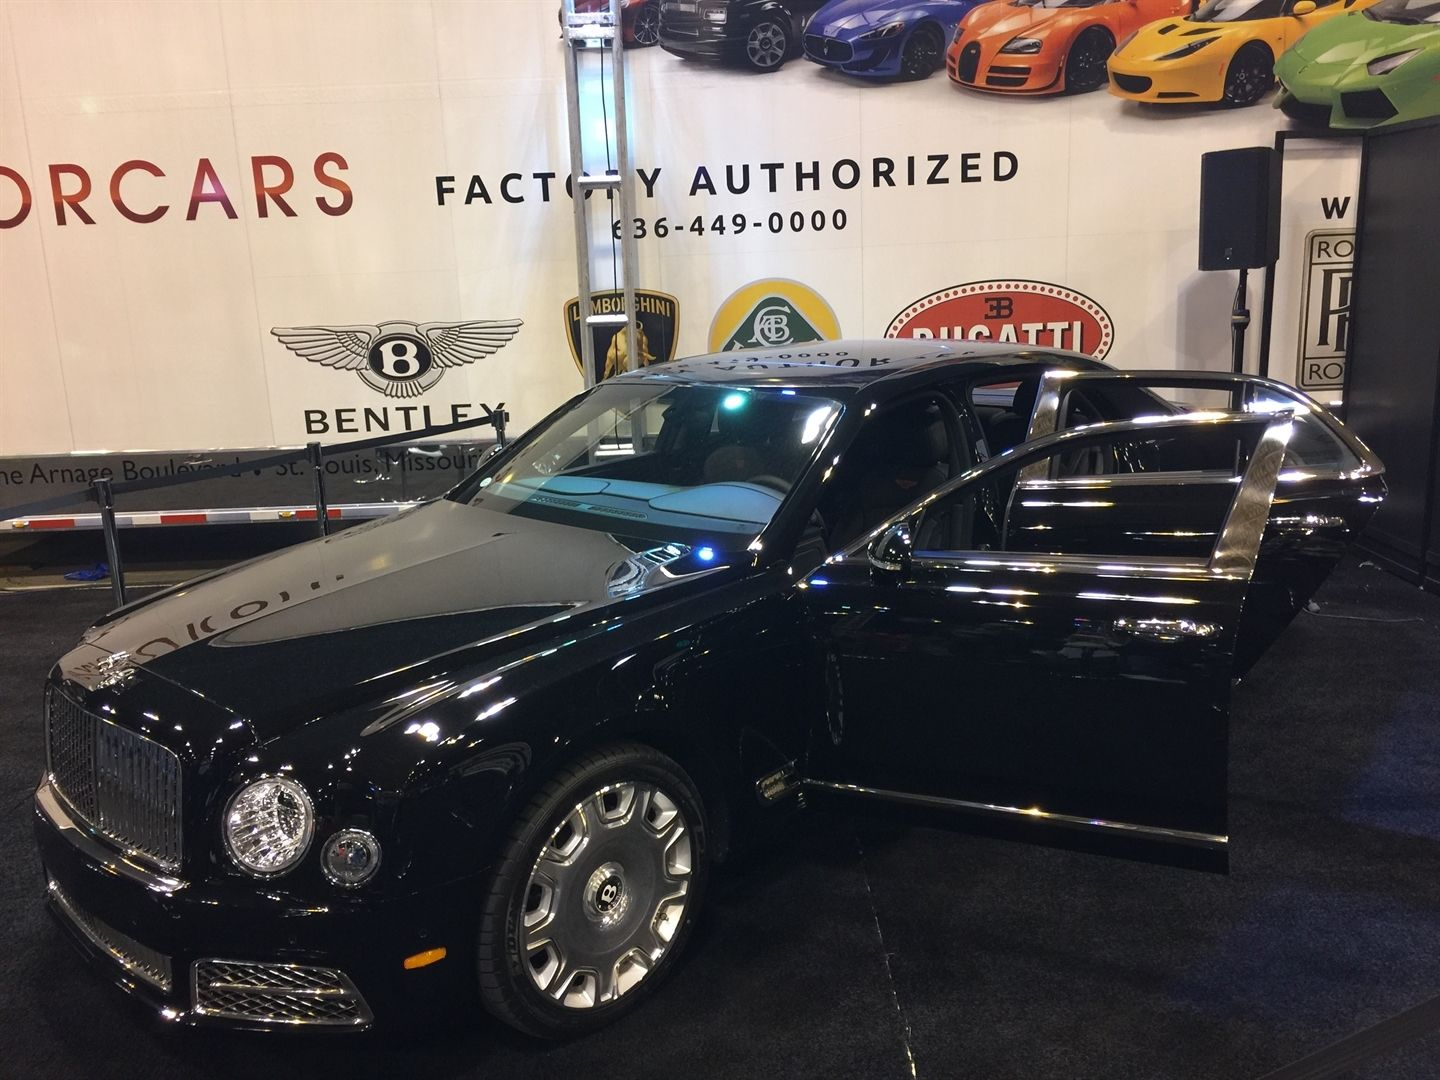 St. Louis Auto Show (With images) Bentley, Motor car, Auto